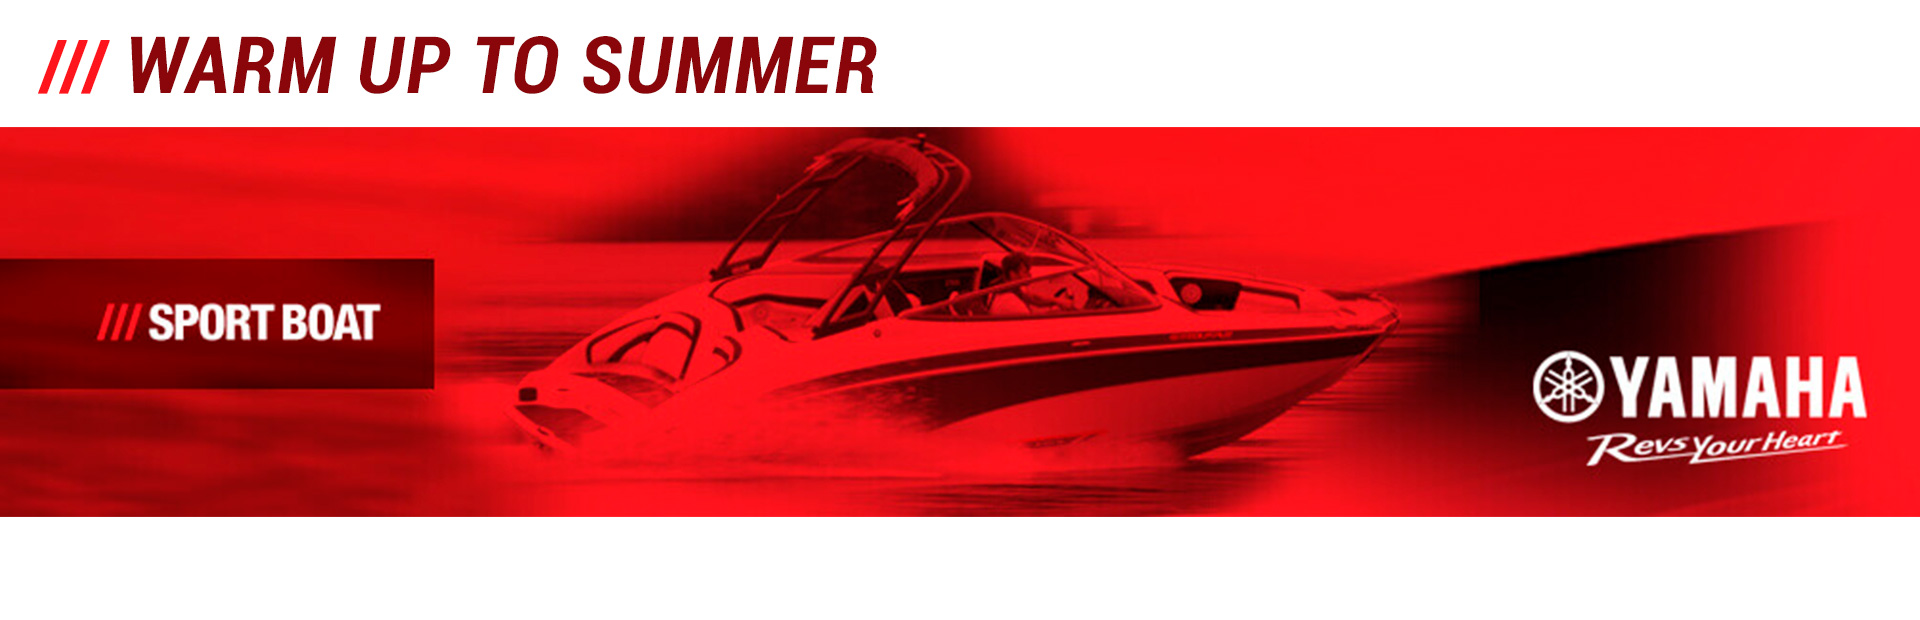 Yamaha: Warm Up To Summer (Sport Boat)